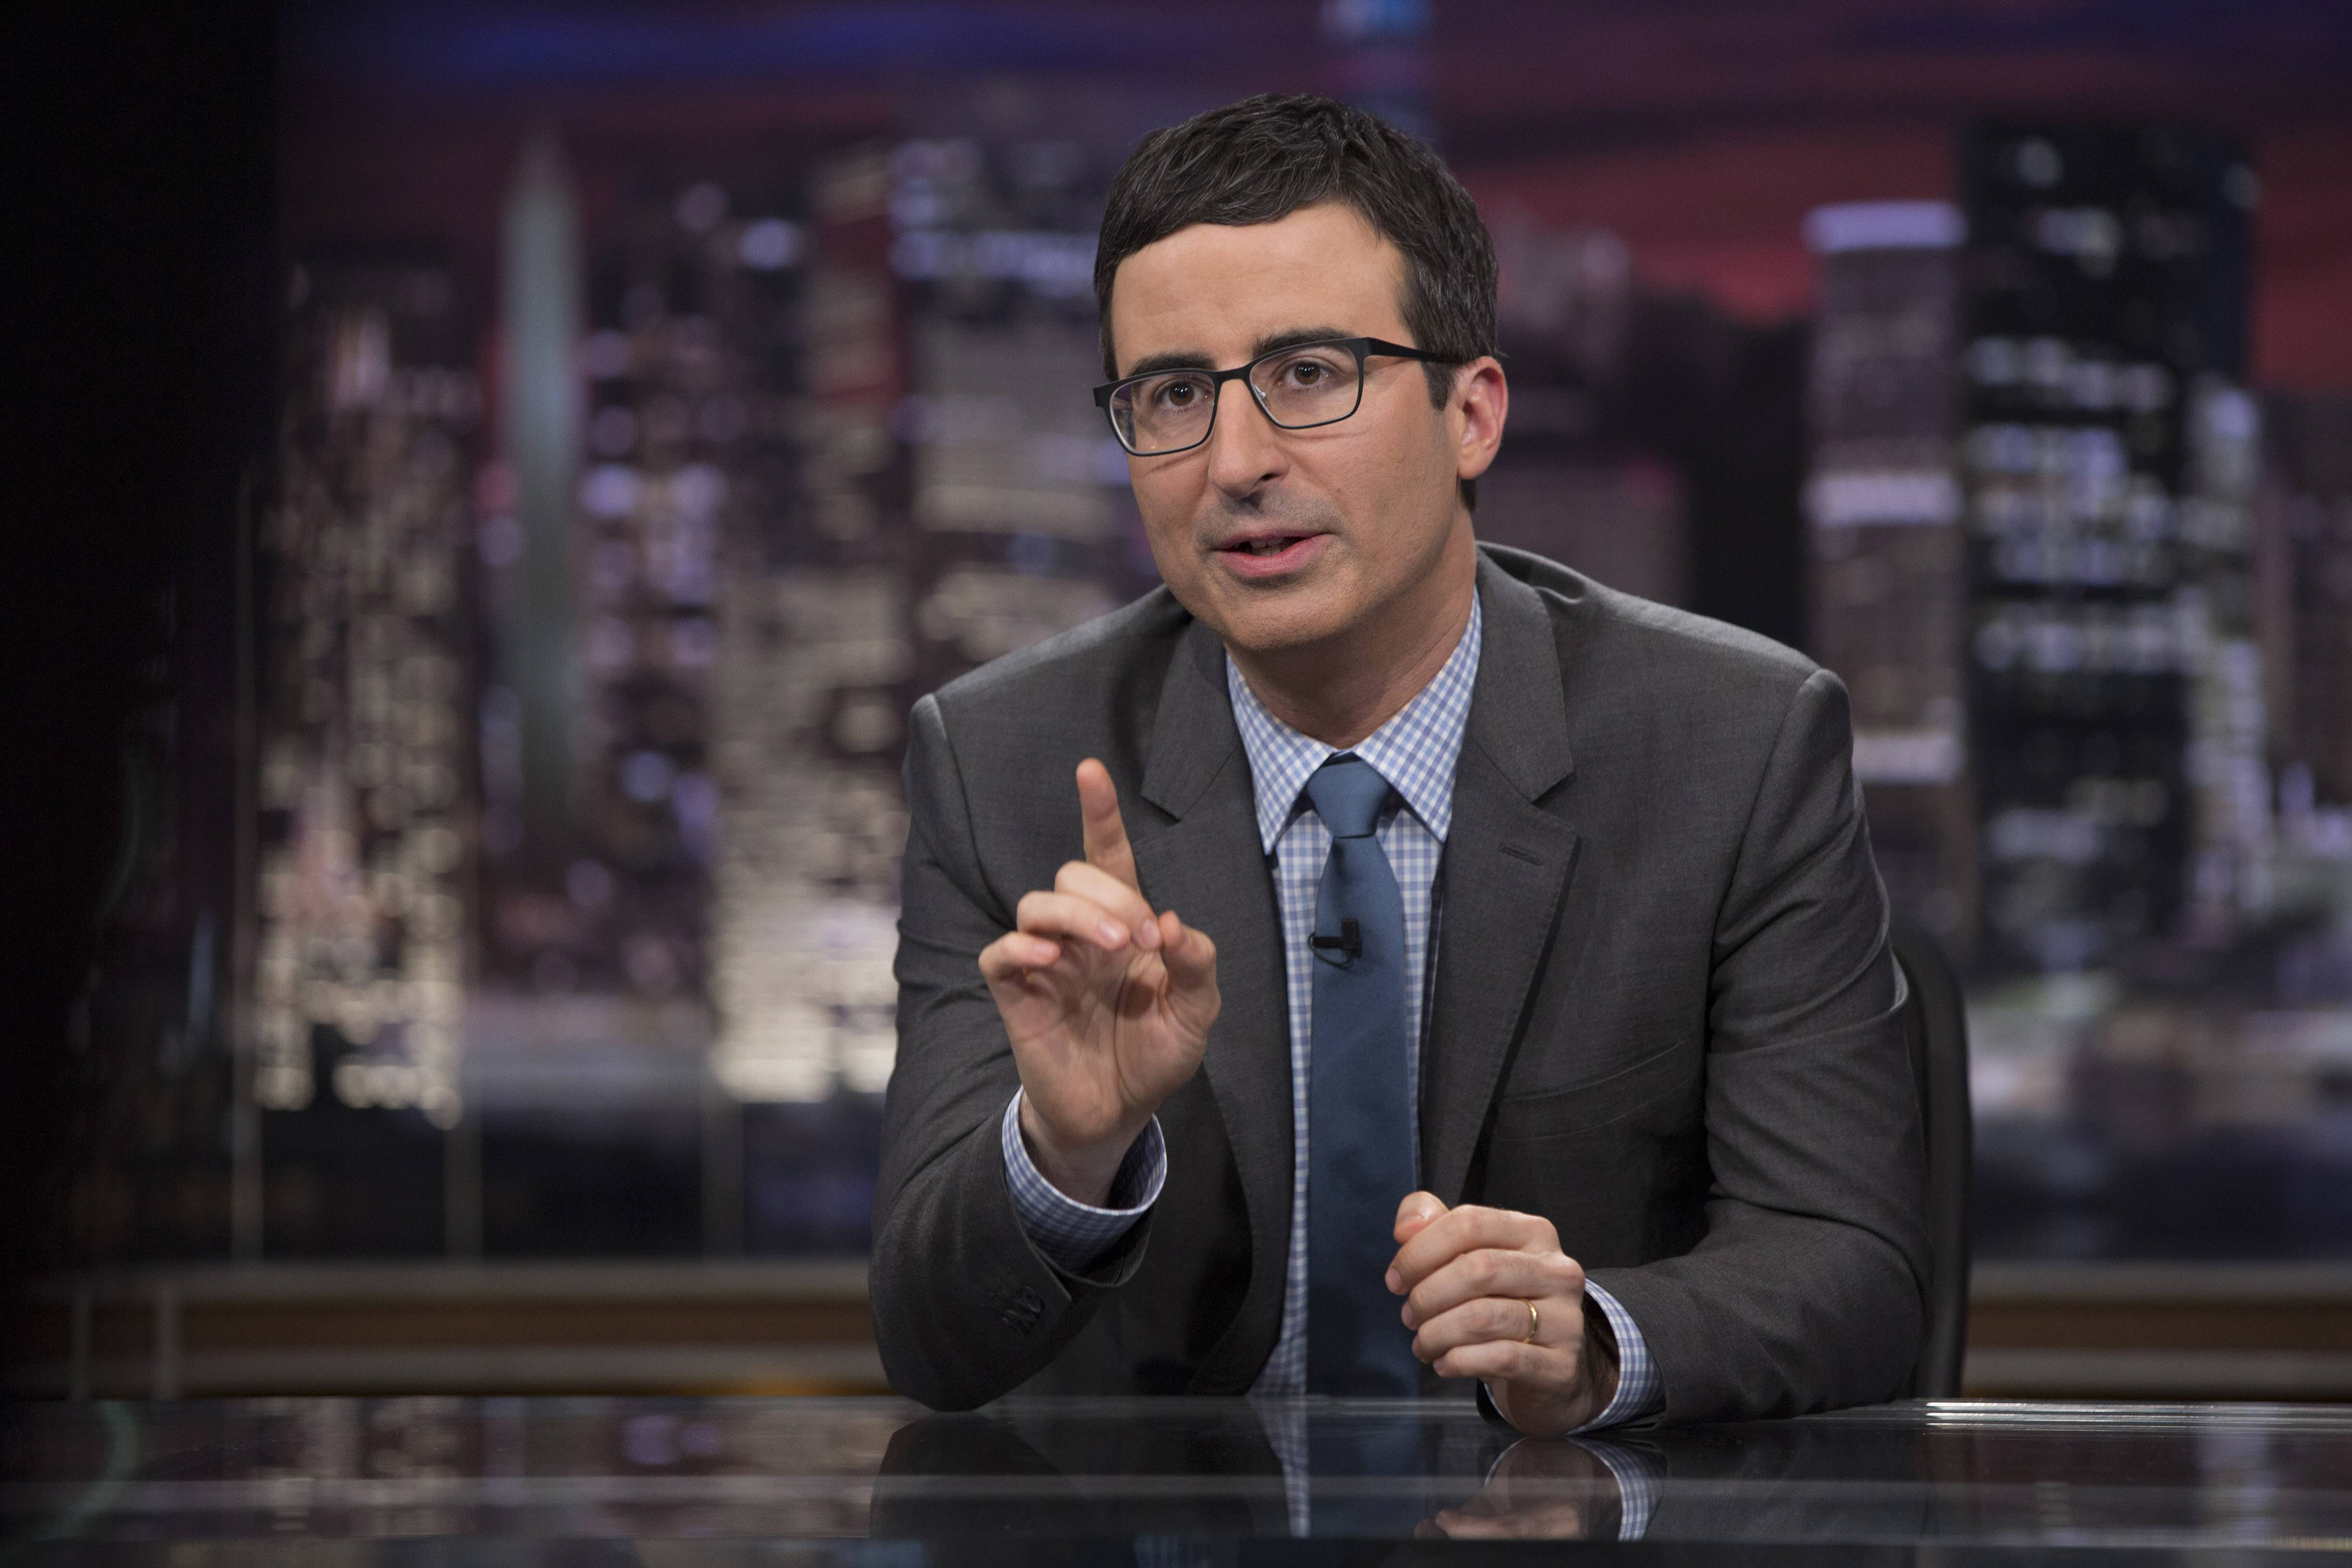 John Oliver Biography - Actor English Comedian